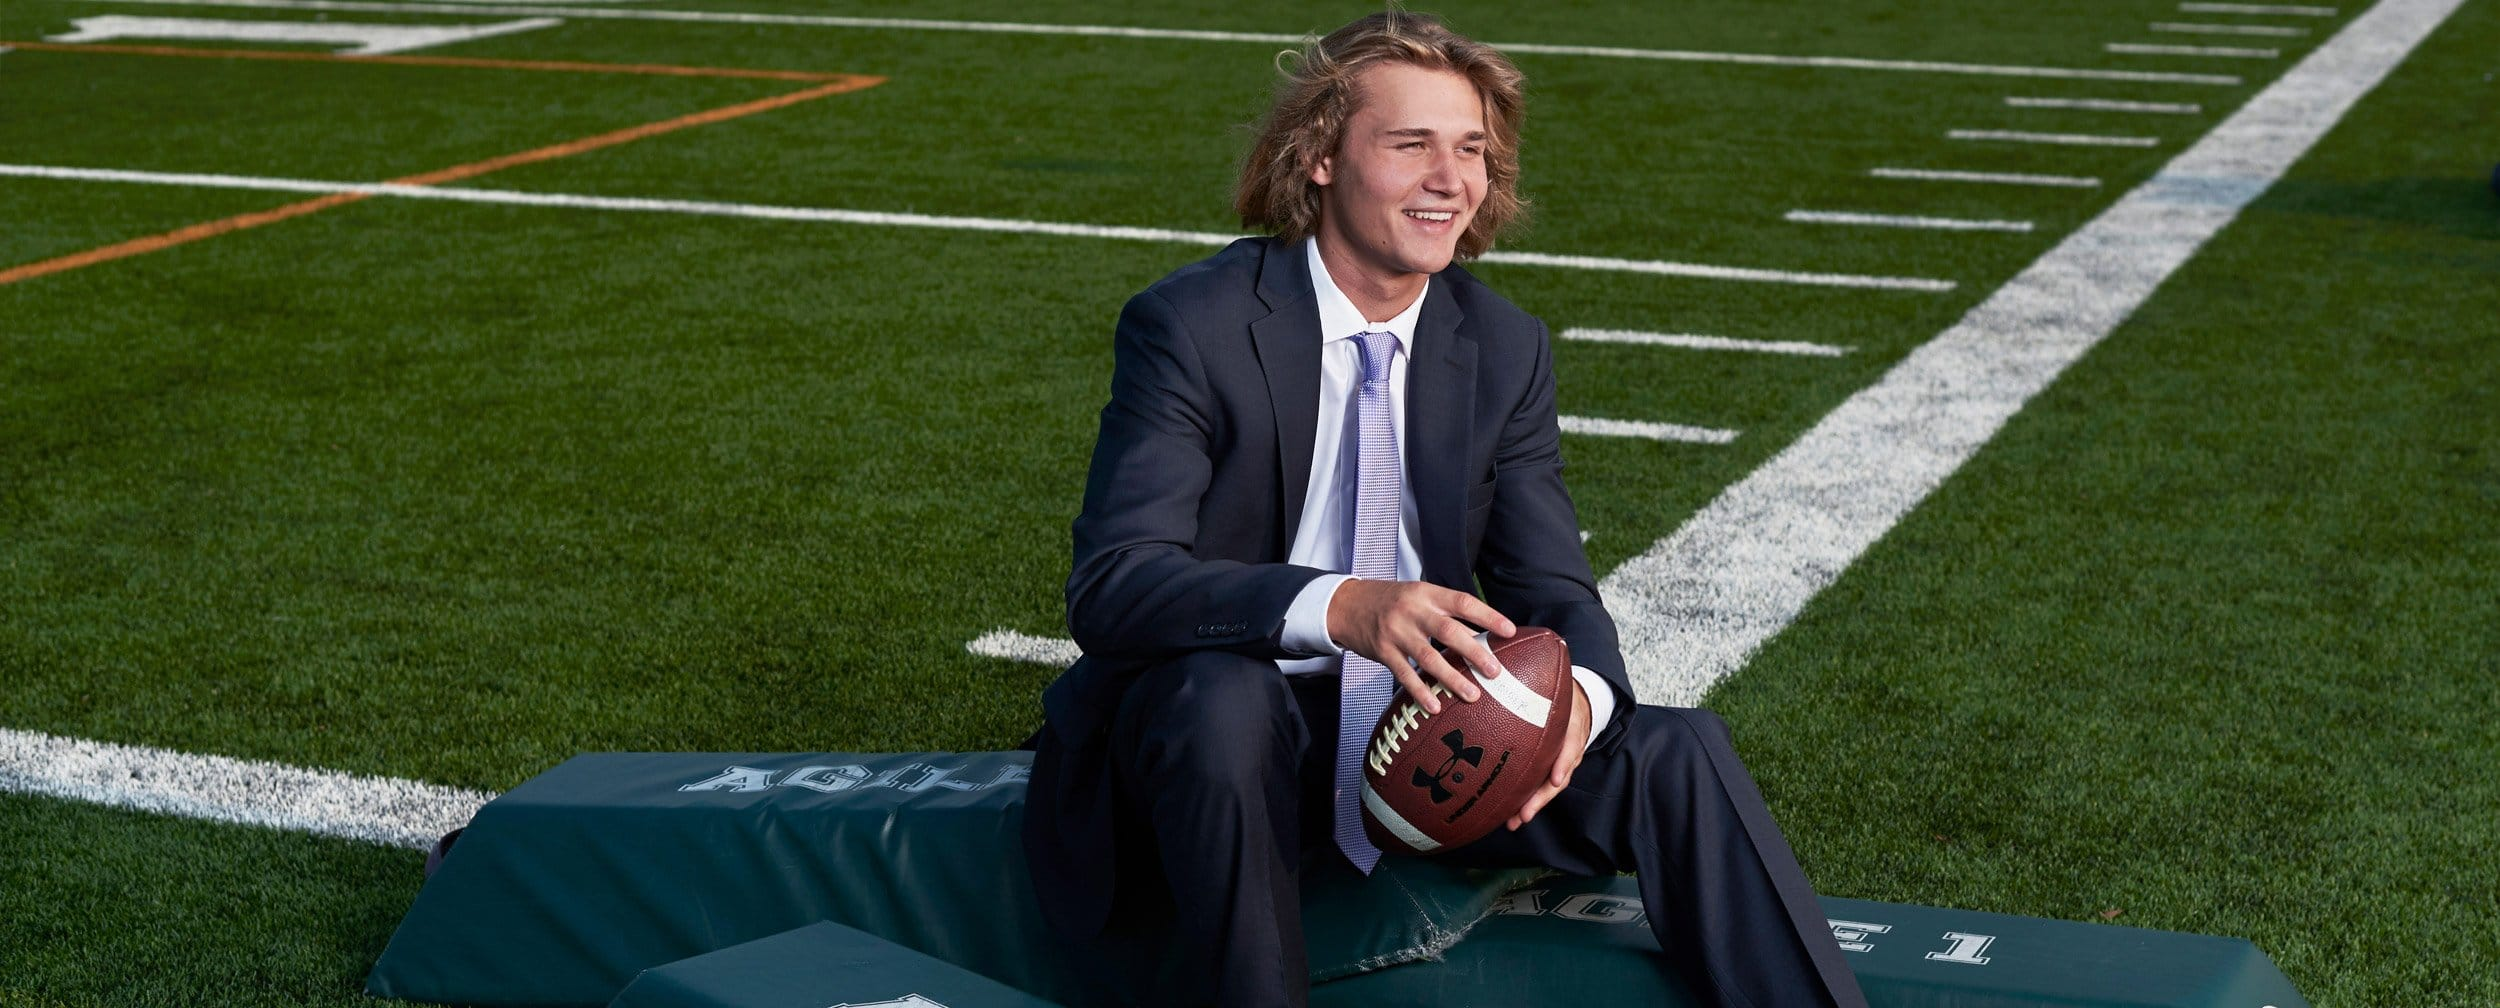 Dallas High School sports portraits of football player from prosper on field in suit